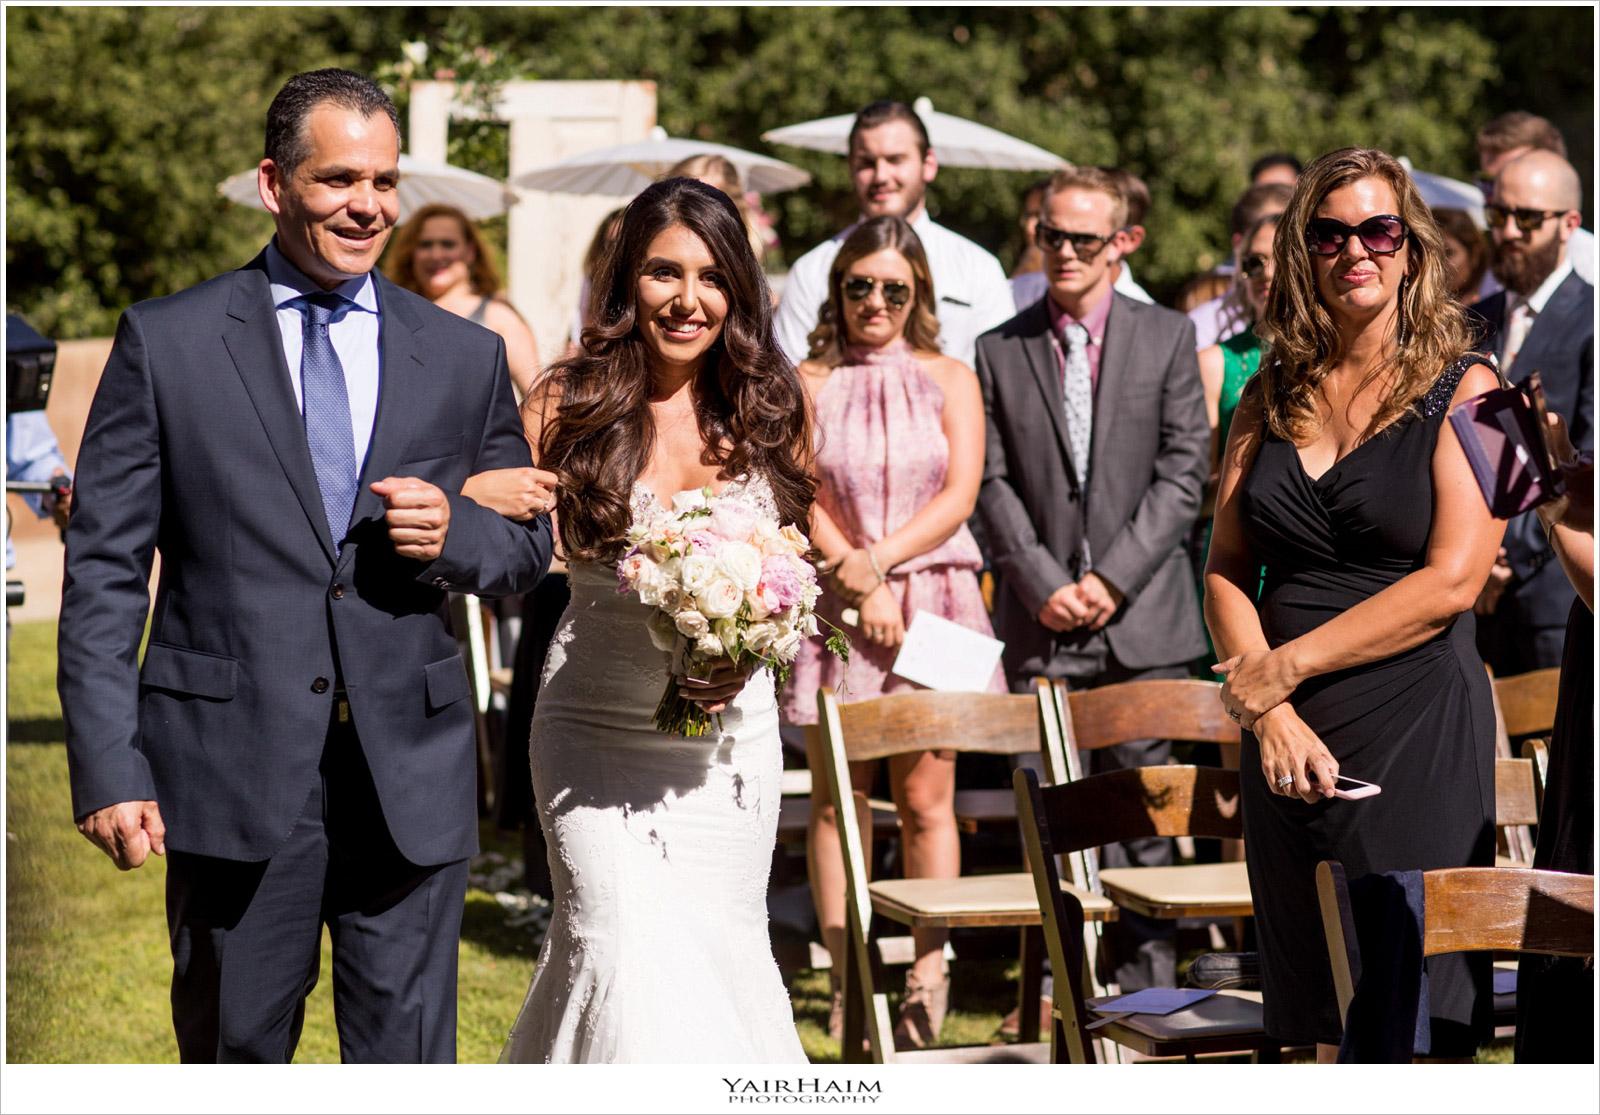 Destination-wedding-photographer-Yair-Haim-17